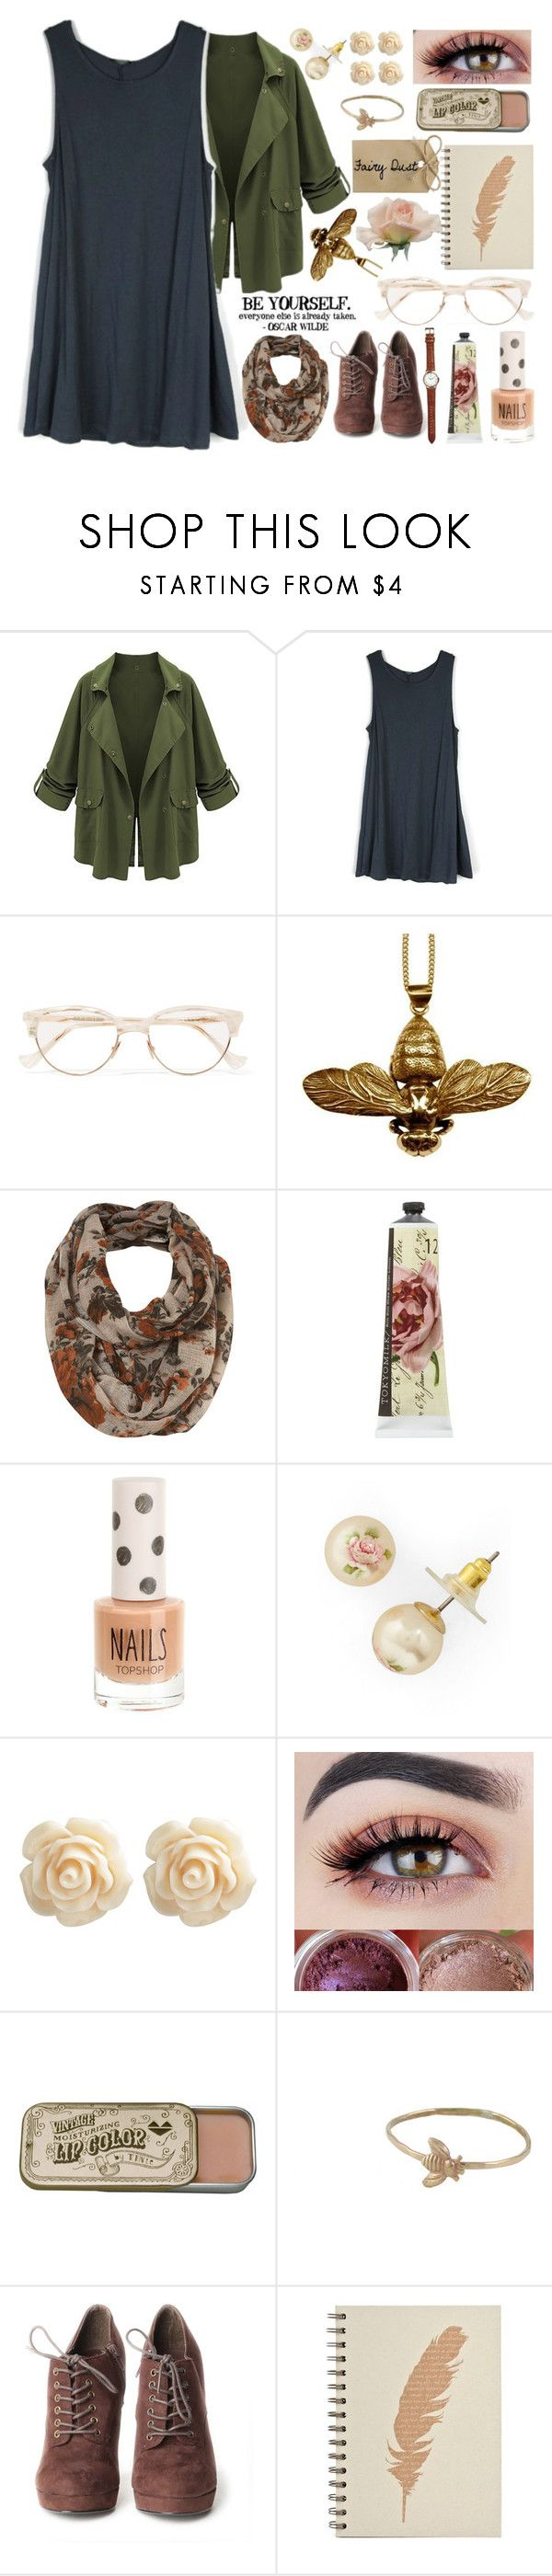 """""""C"""" by ohgoditsyou-k ❤ liked on Polyvore featuring Cutler and Gross, Justine Brooks, TokyoMilk, Topshop, Wet Seal and Peggy Li"""